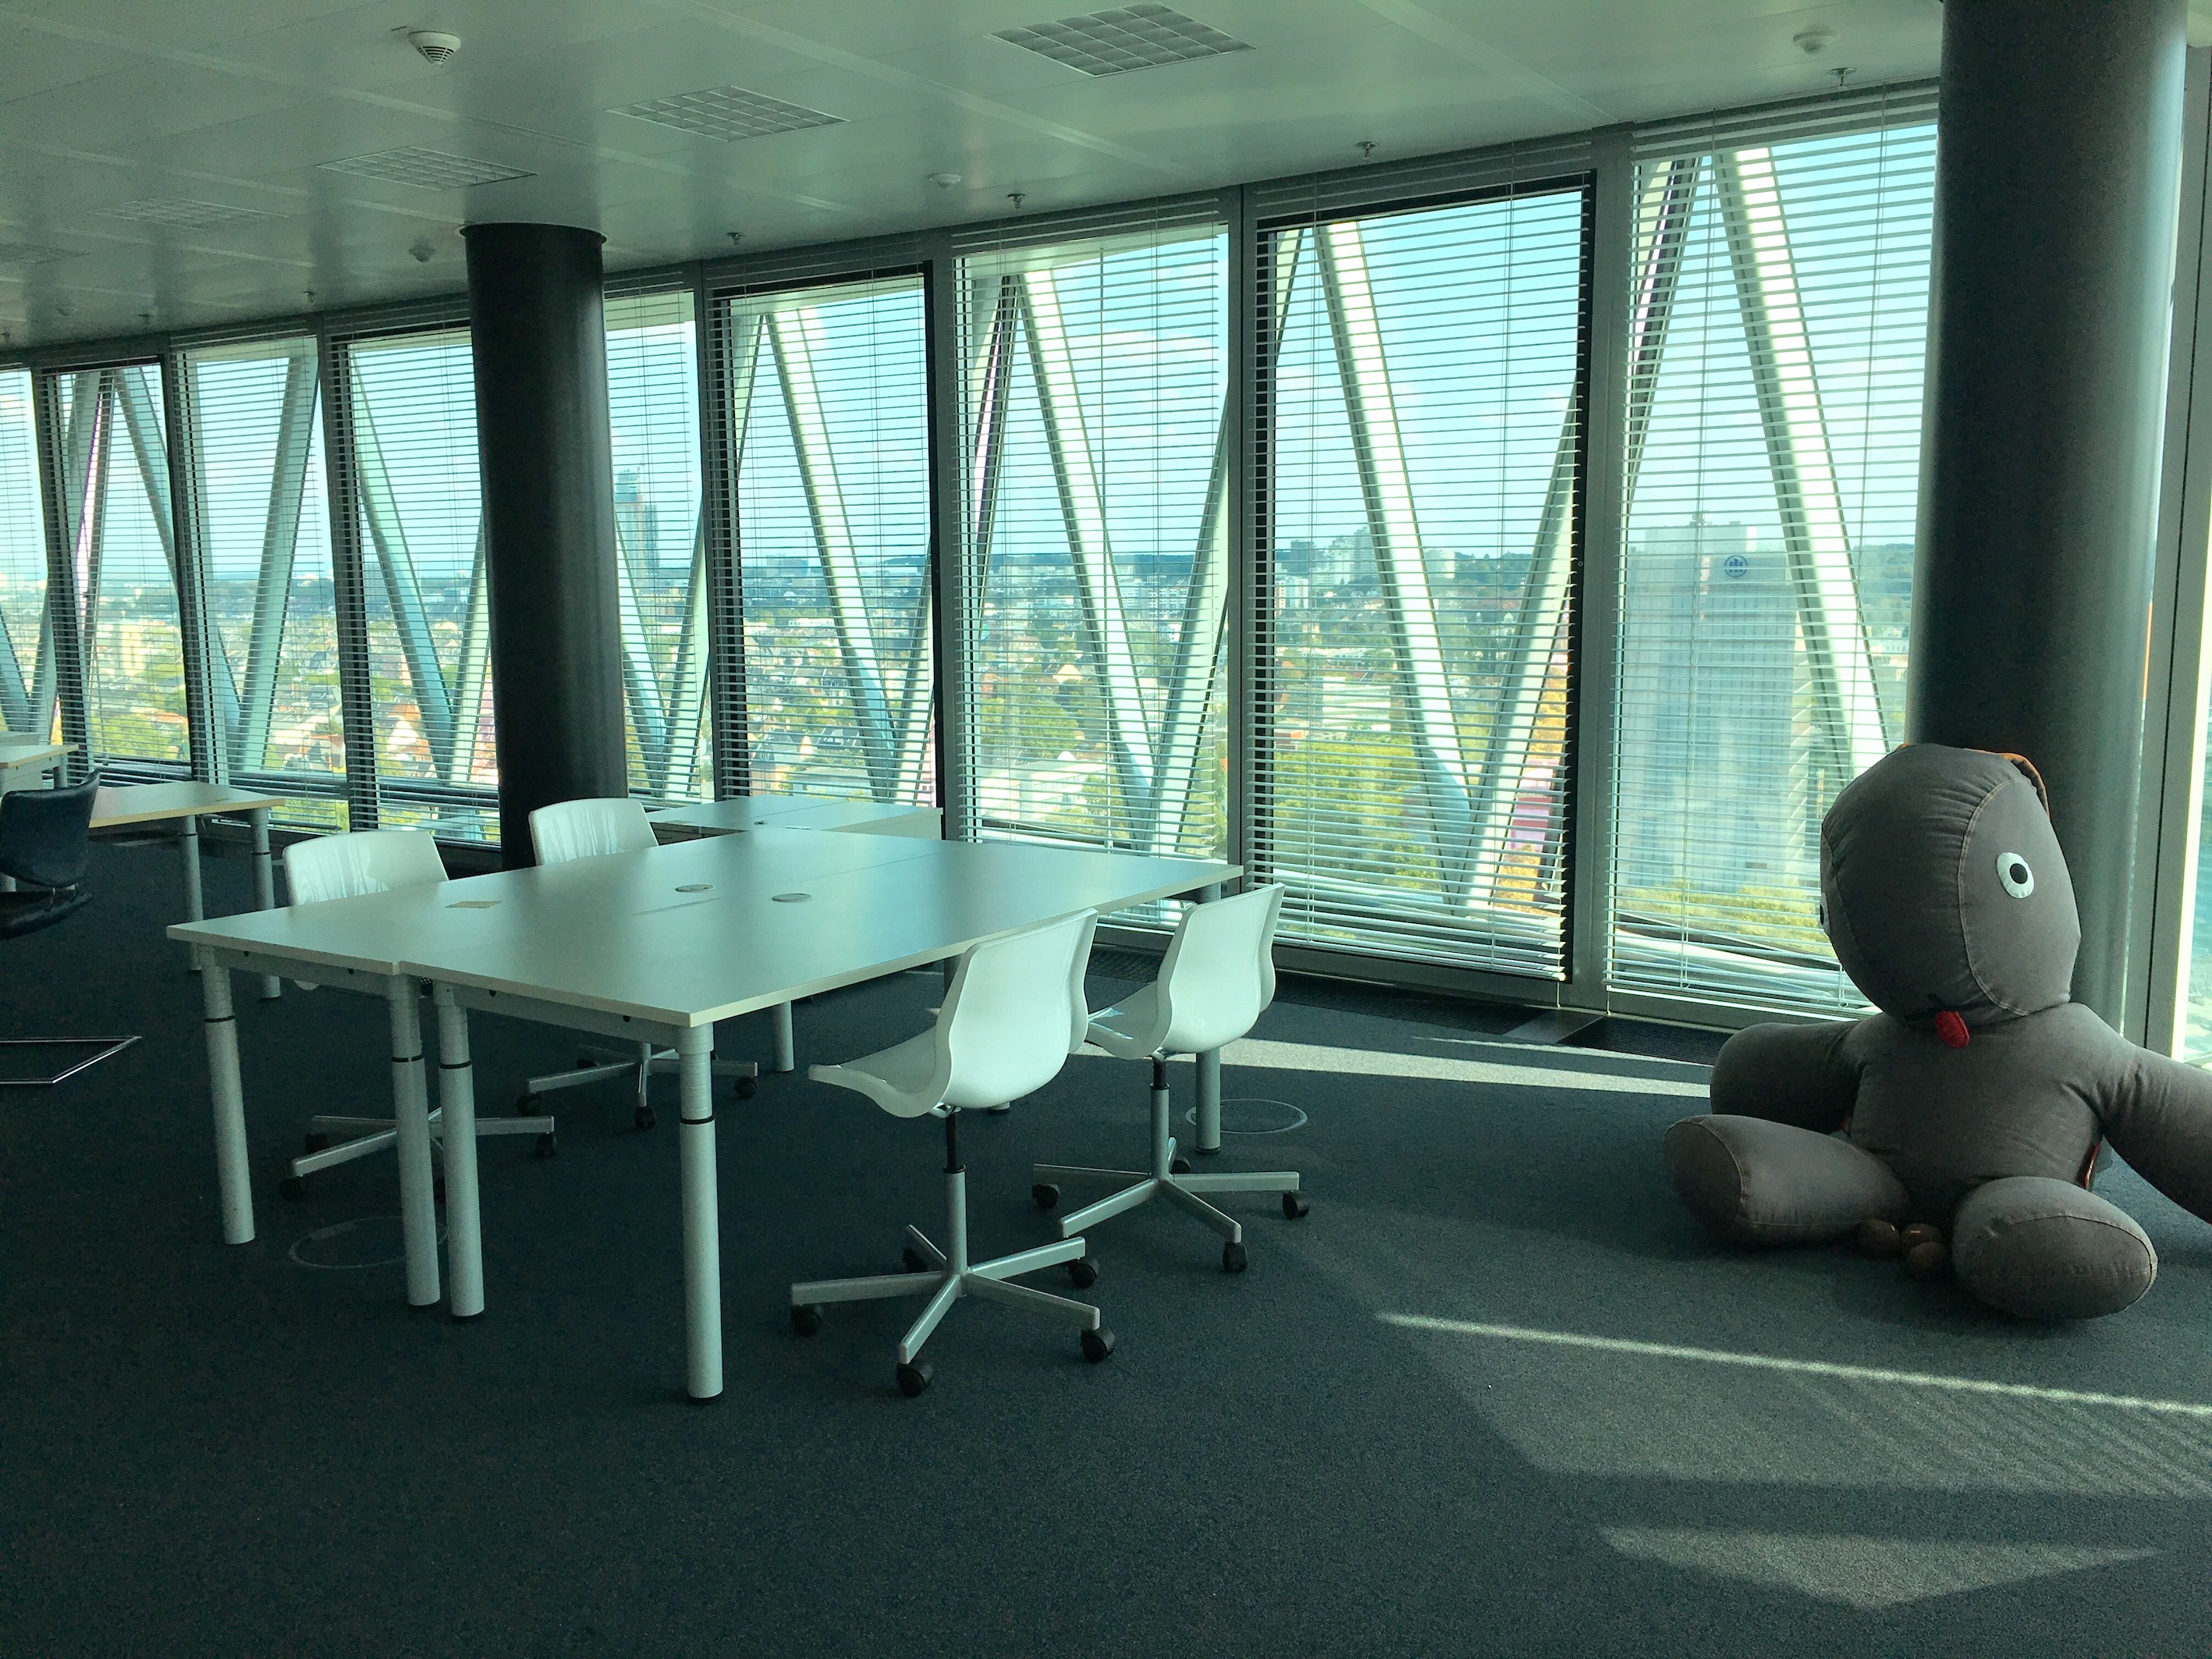 https://www.acceleratorfrankfurt.com/wp-content/uploads/2018/08/office-AF3.jpg